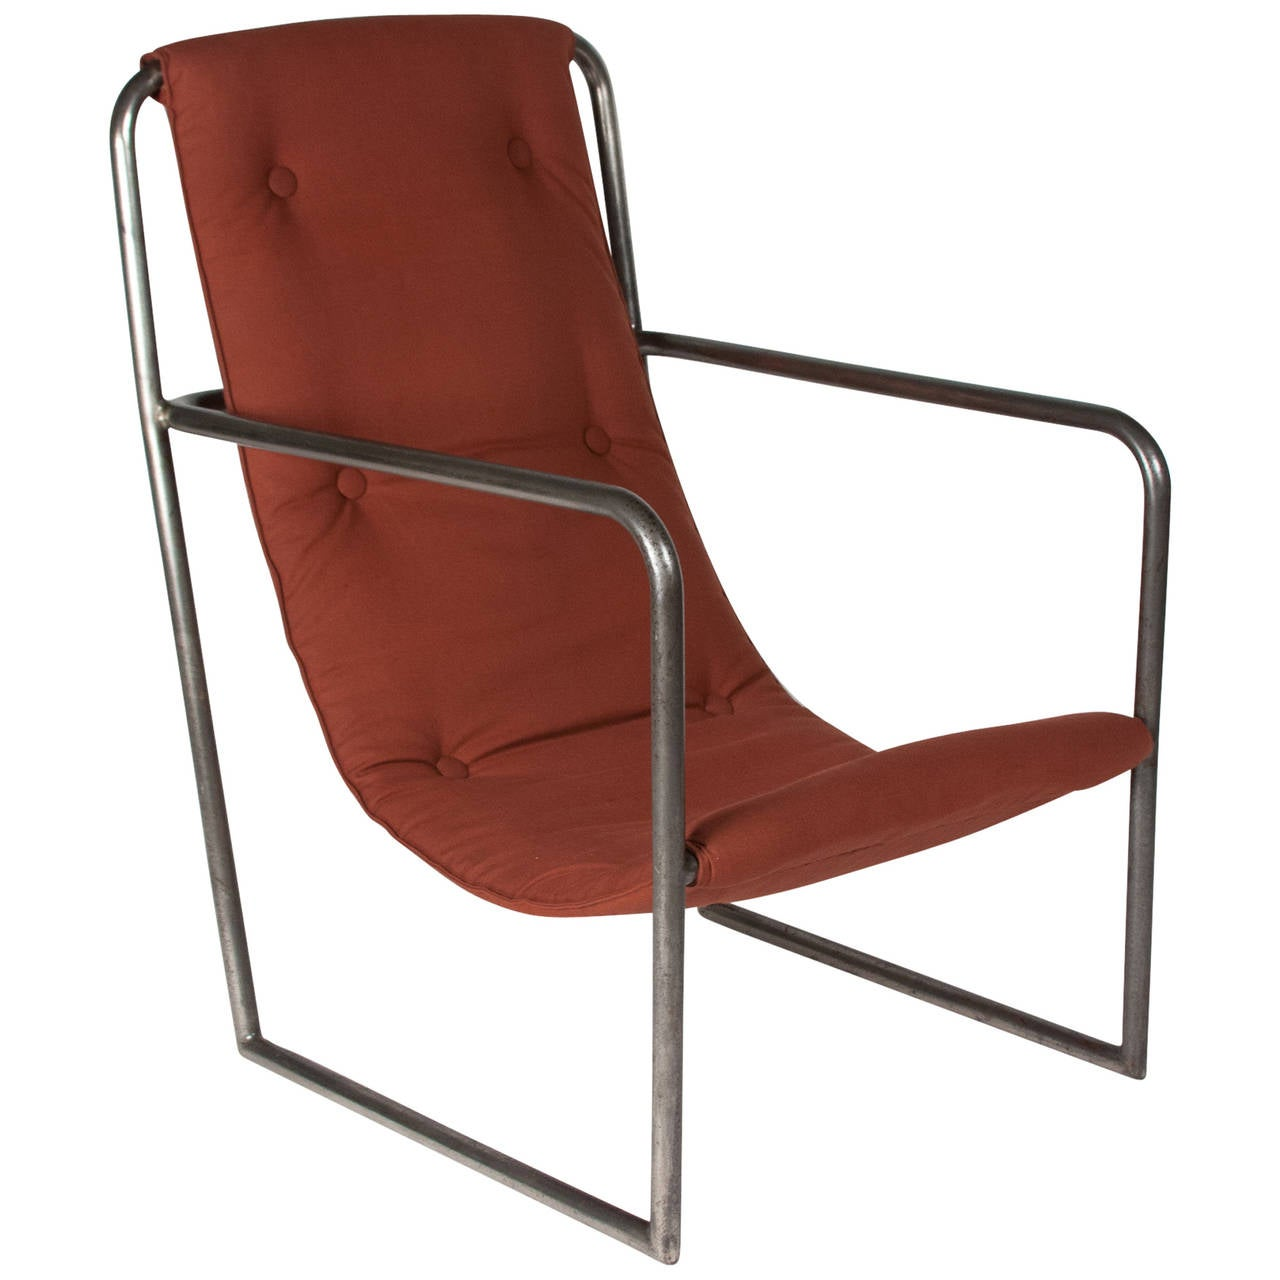 Louis sognot style tubular metal chair french 1920s for sale at